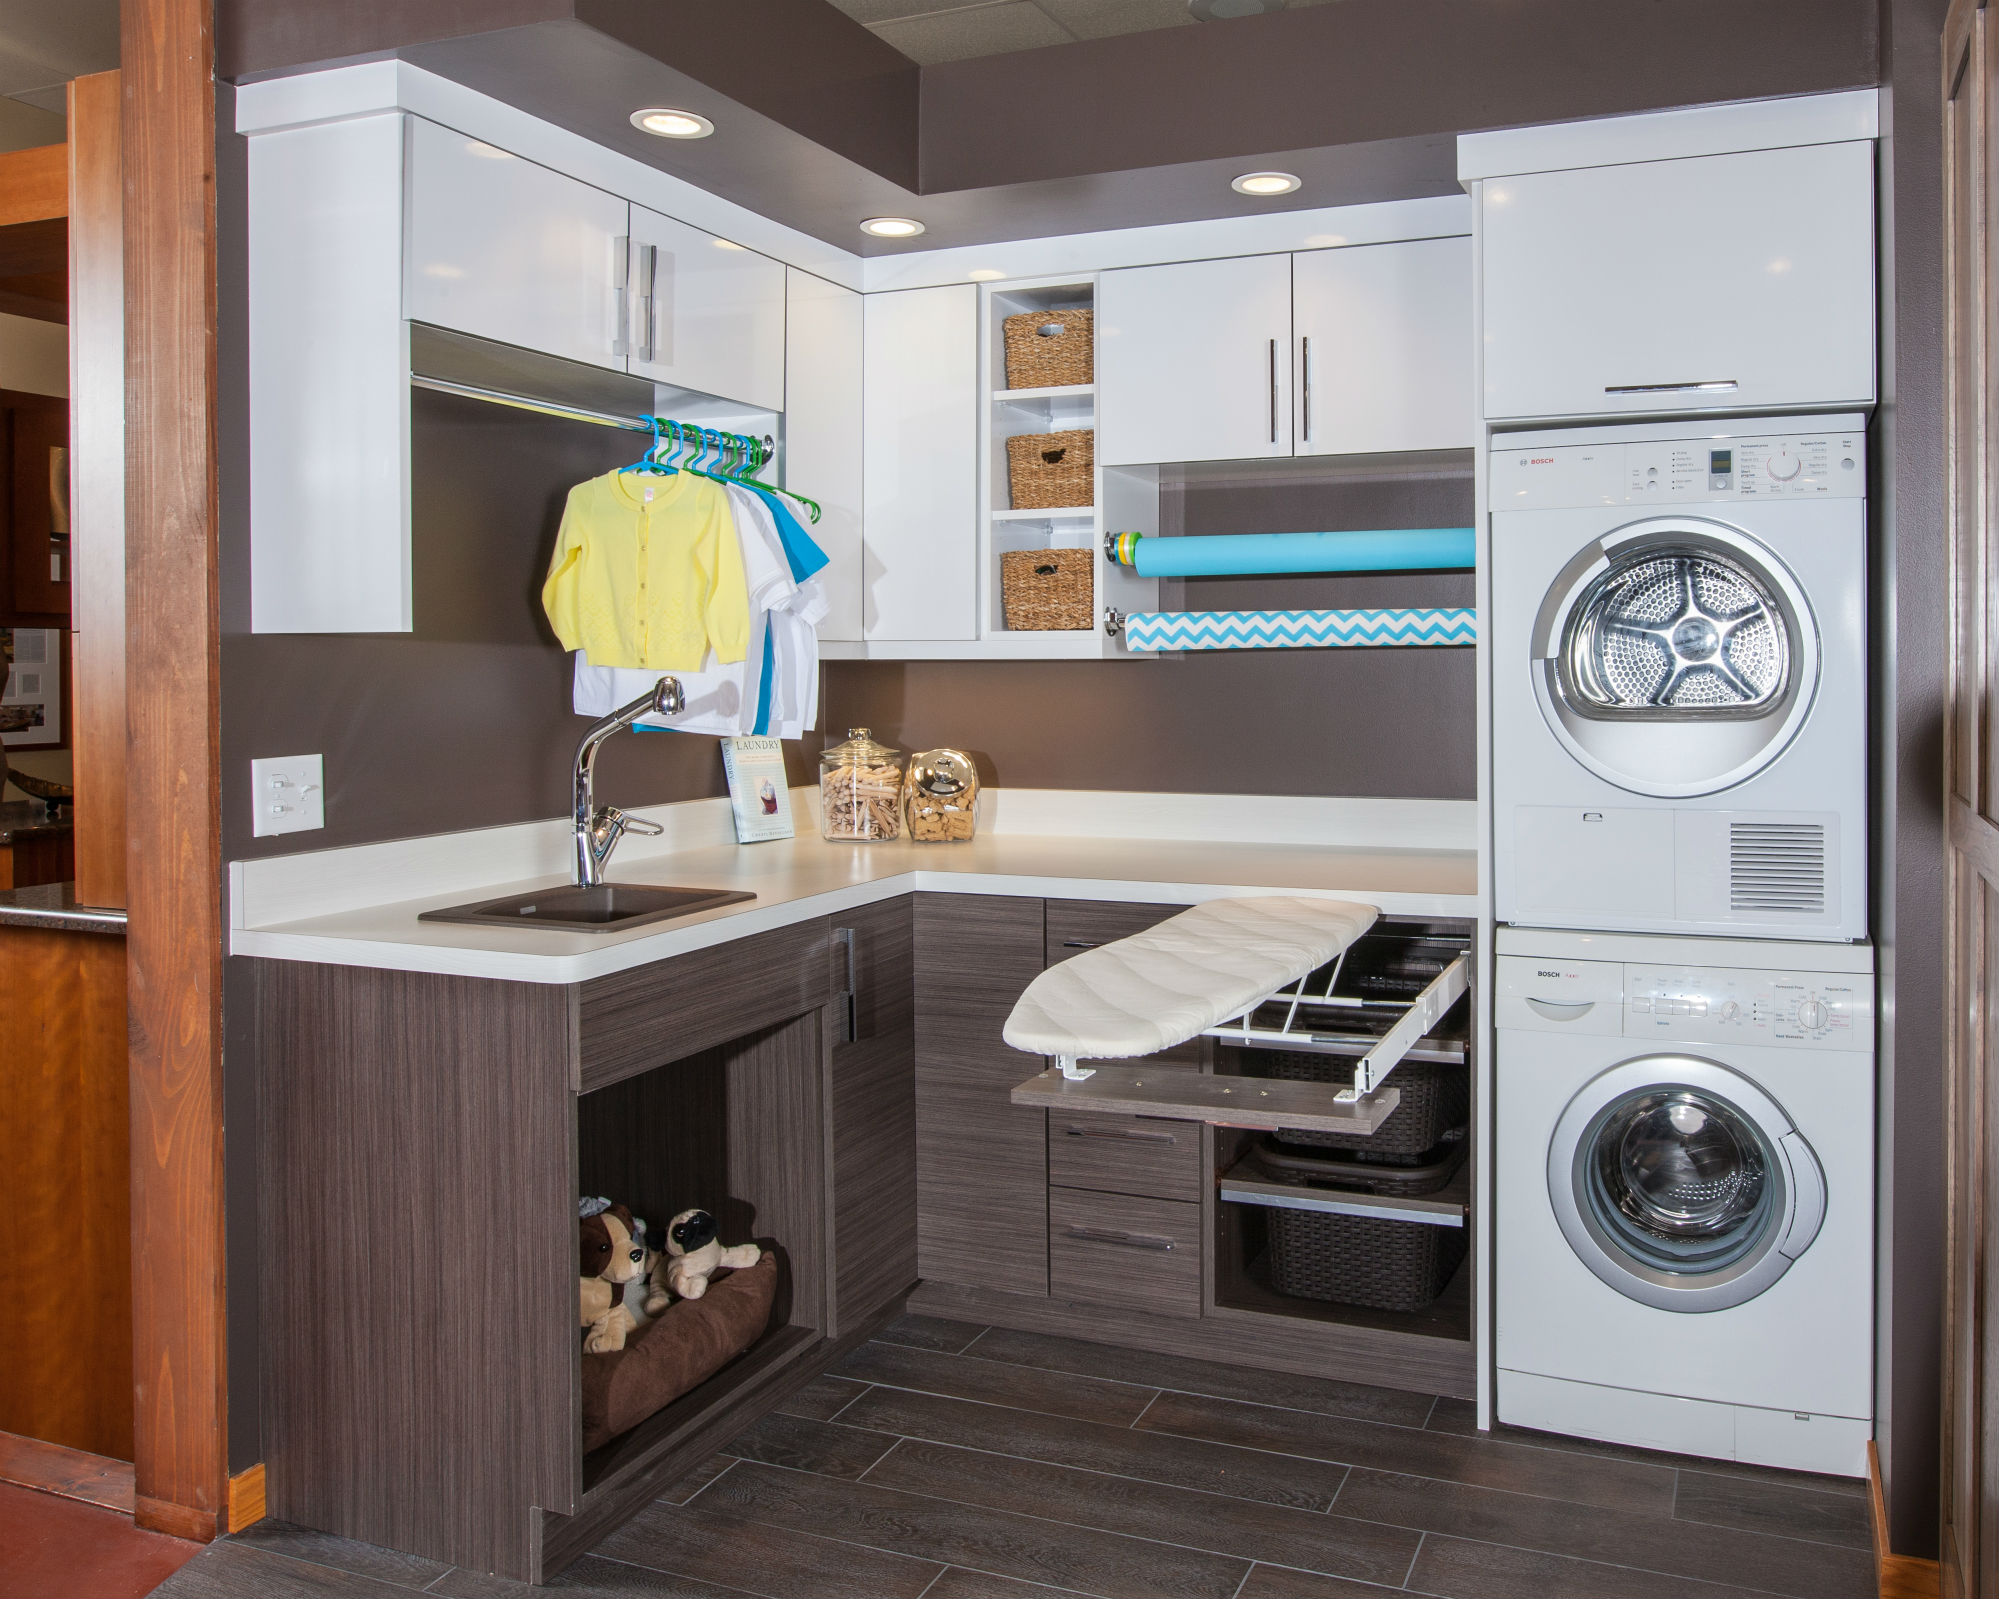 Kitchen Utility Room Ideas Crystal Kitchen 43 Bath Laundry Rooms Remodeling